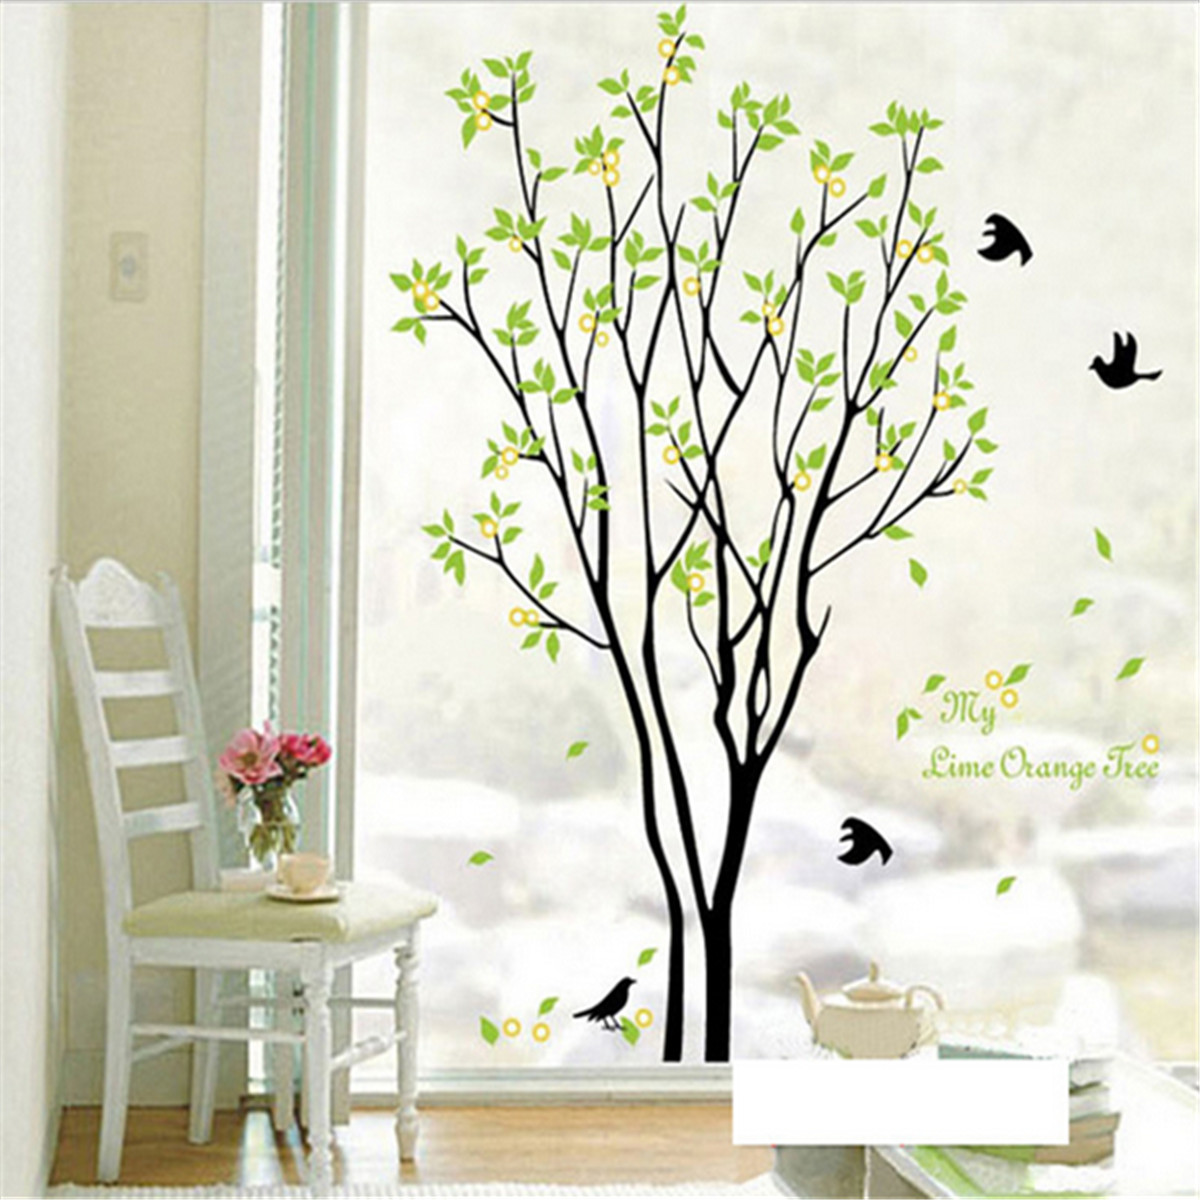 Tree Bird Quote Removable Vinyl Wall Decal Mural Home Art Diy Decor